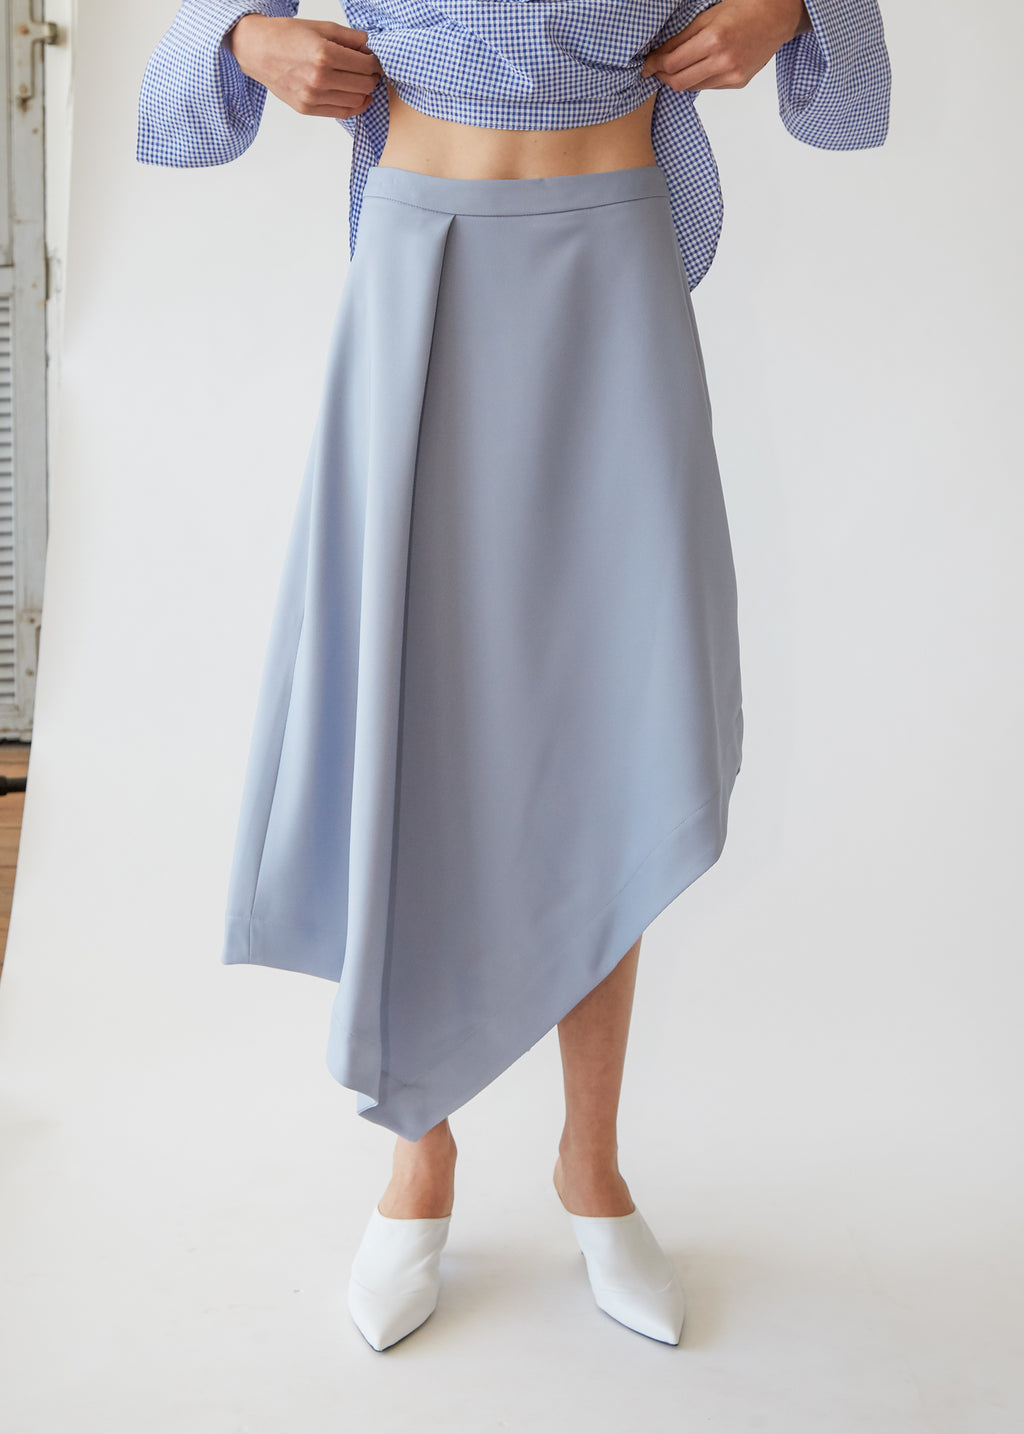 A-Line Asymmetric Skirt in Sky - SOLD OUT